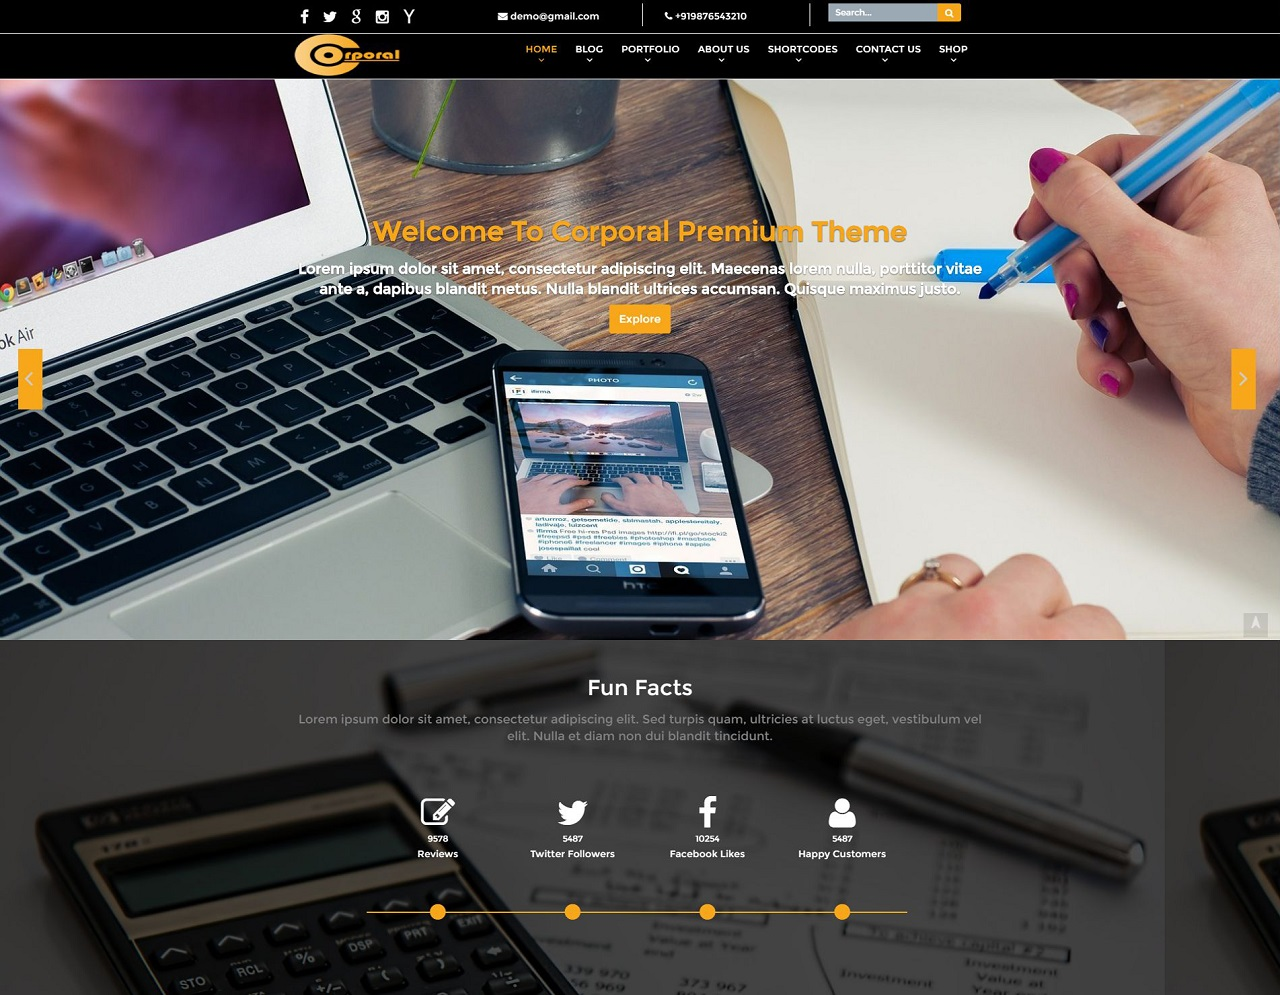 Corporal Premium WordPress Theme